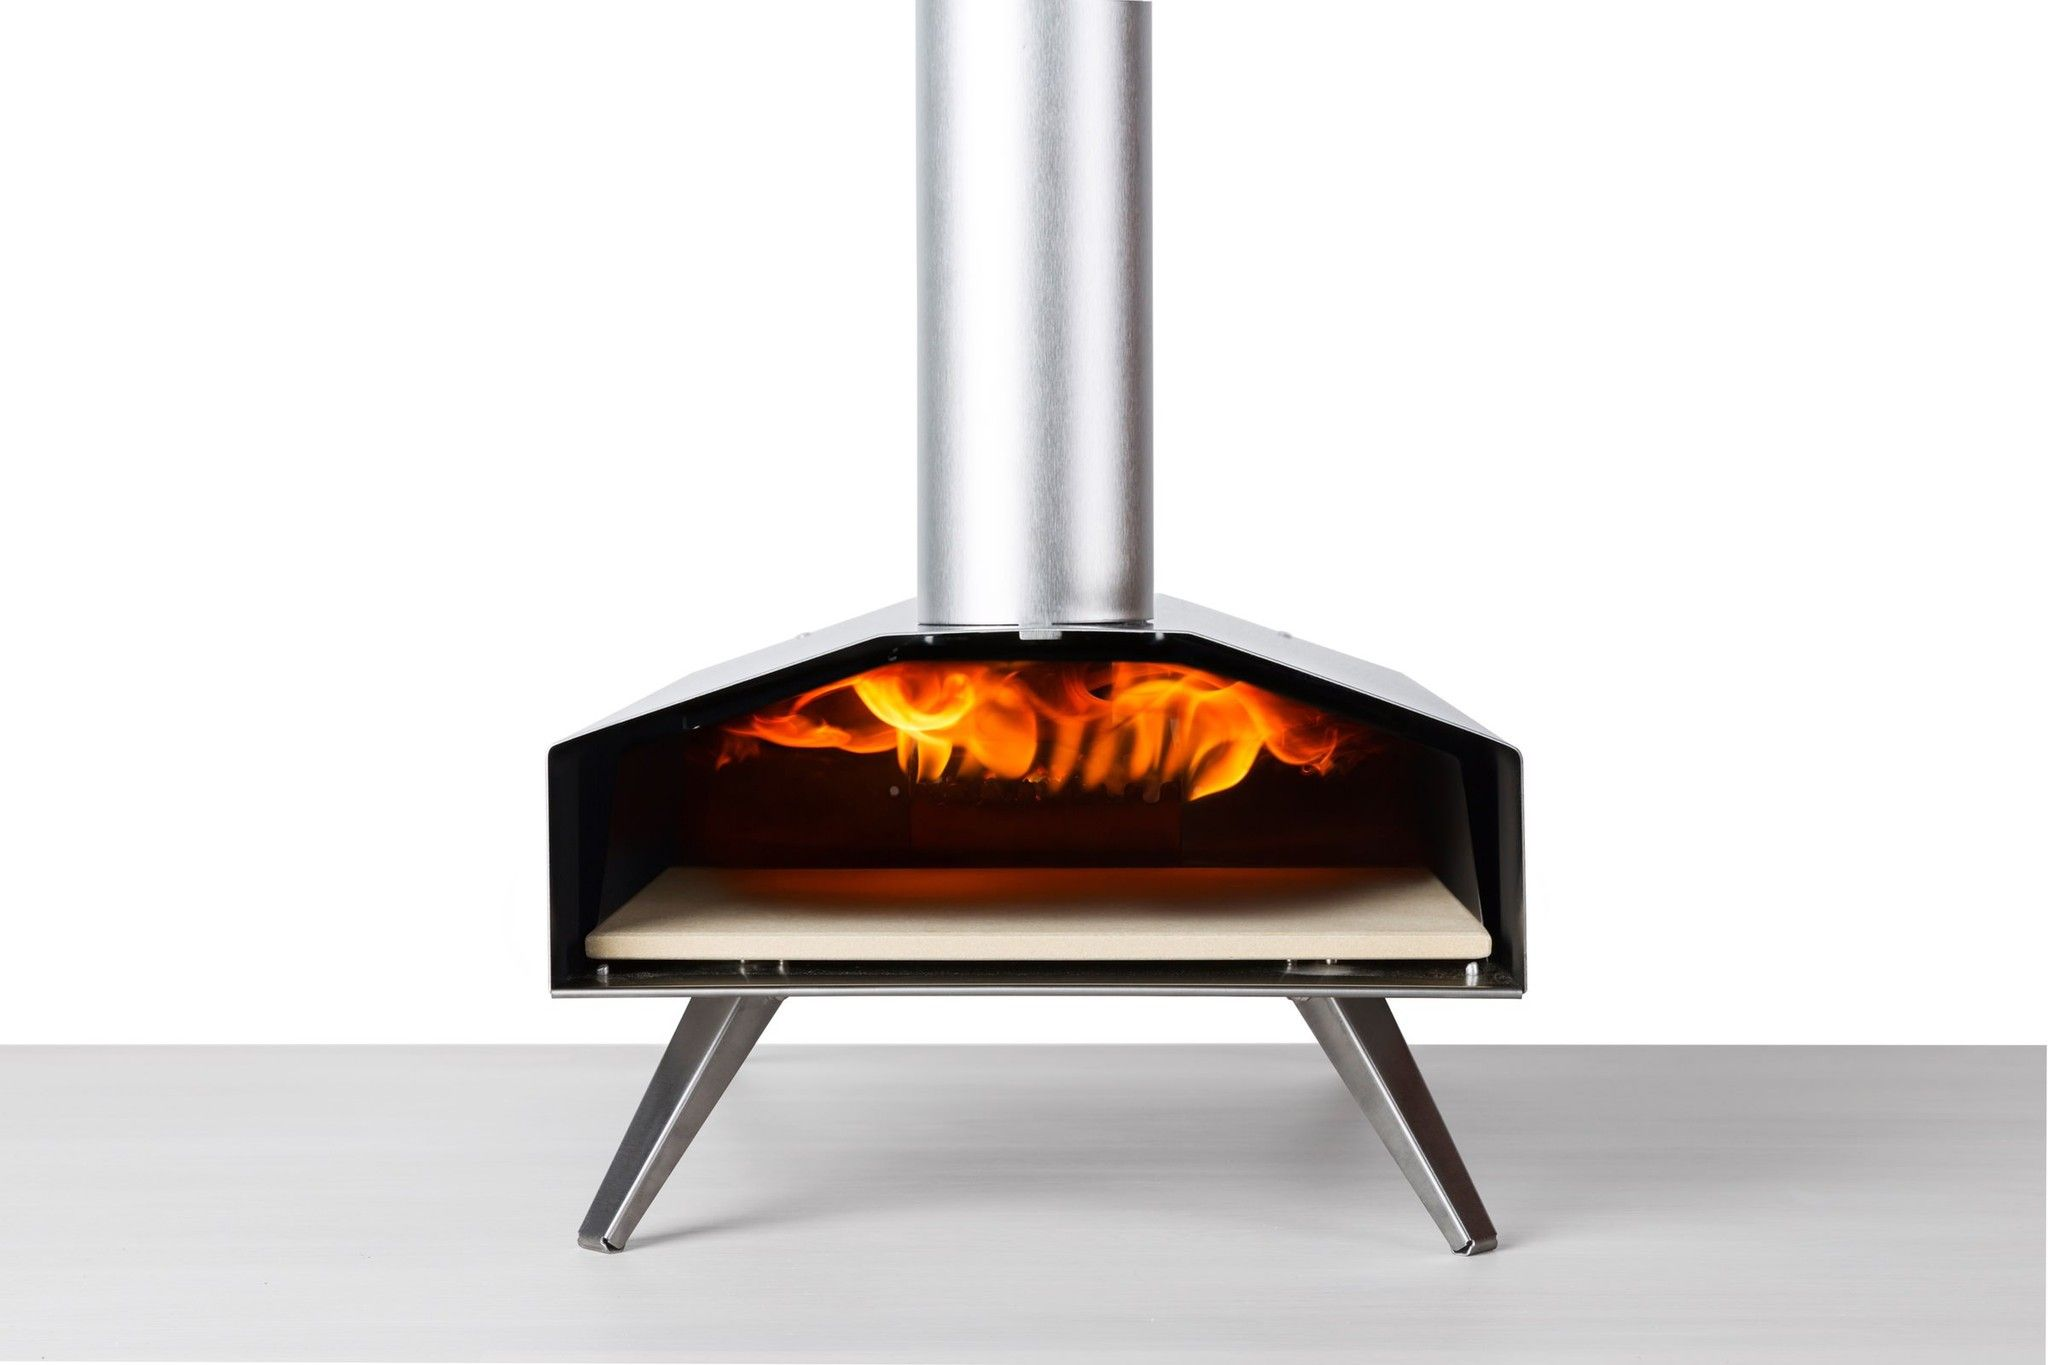 Uuni 3 Pizza Oven Wood Fired Portable Pellet Burning Outdoor Garden Camping Oven